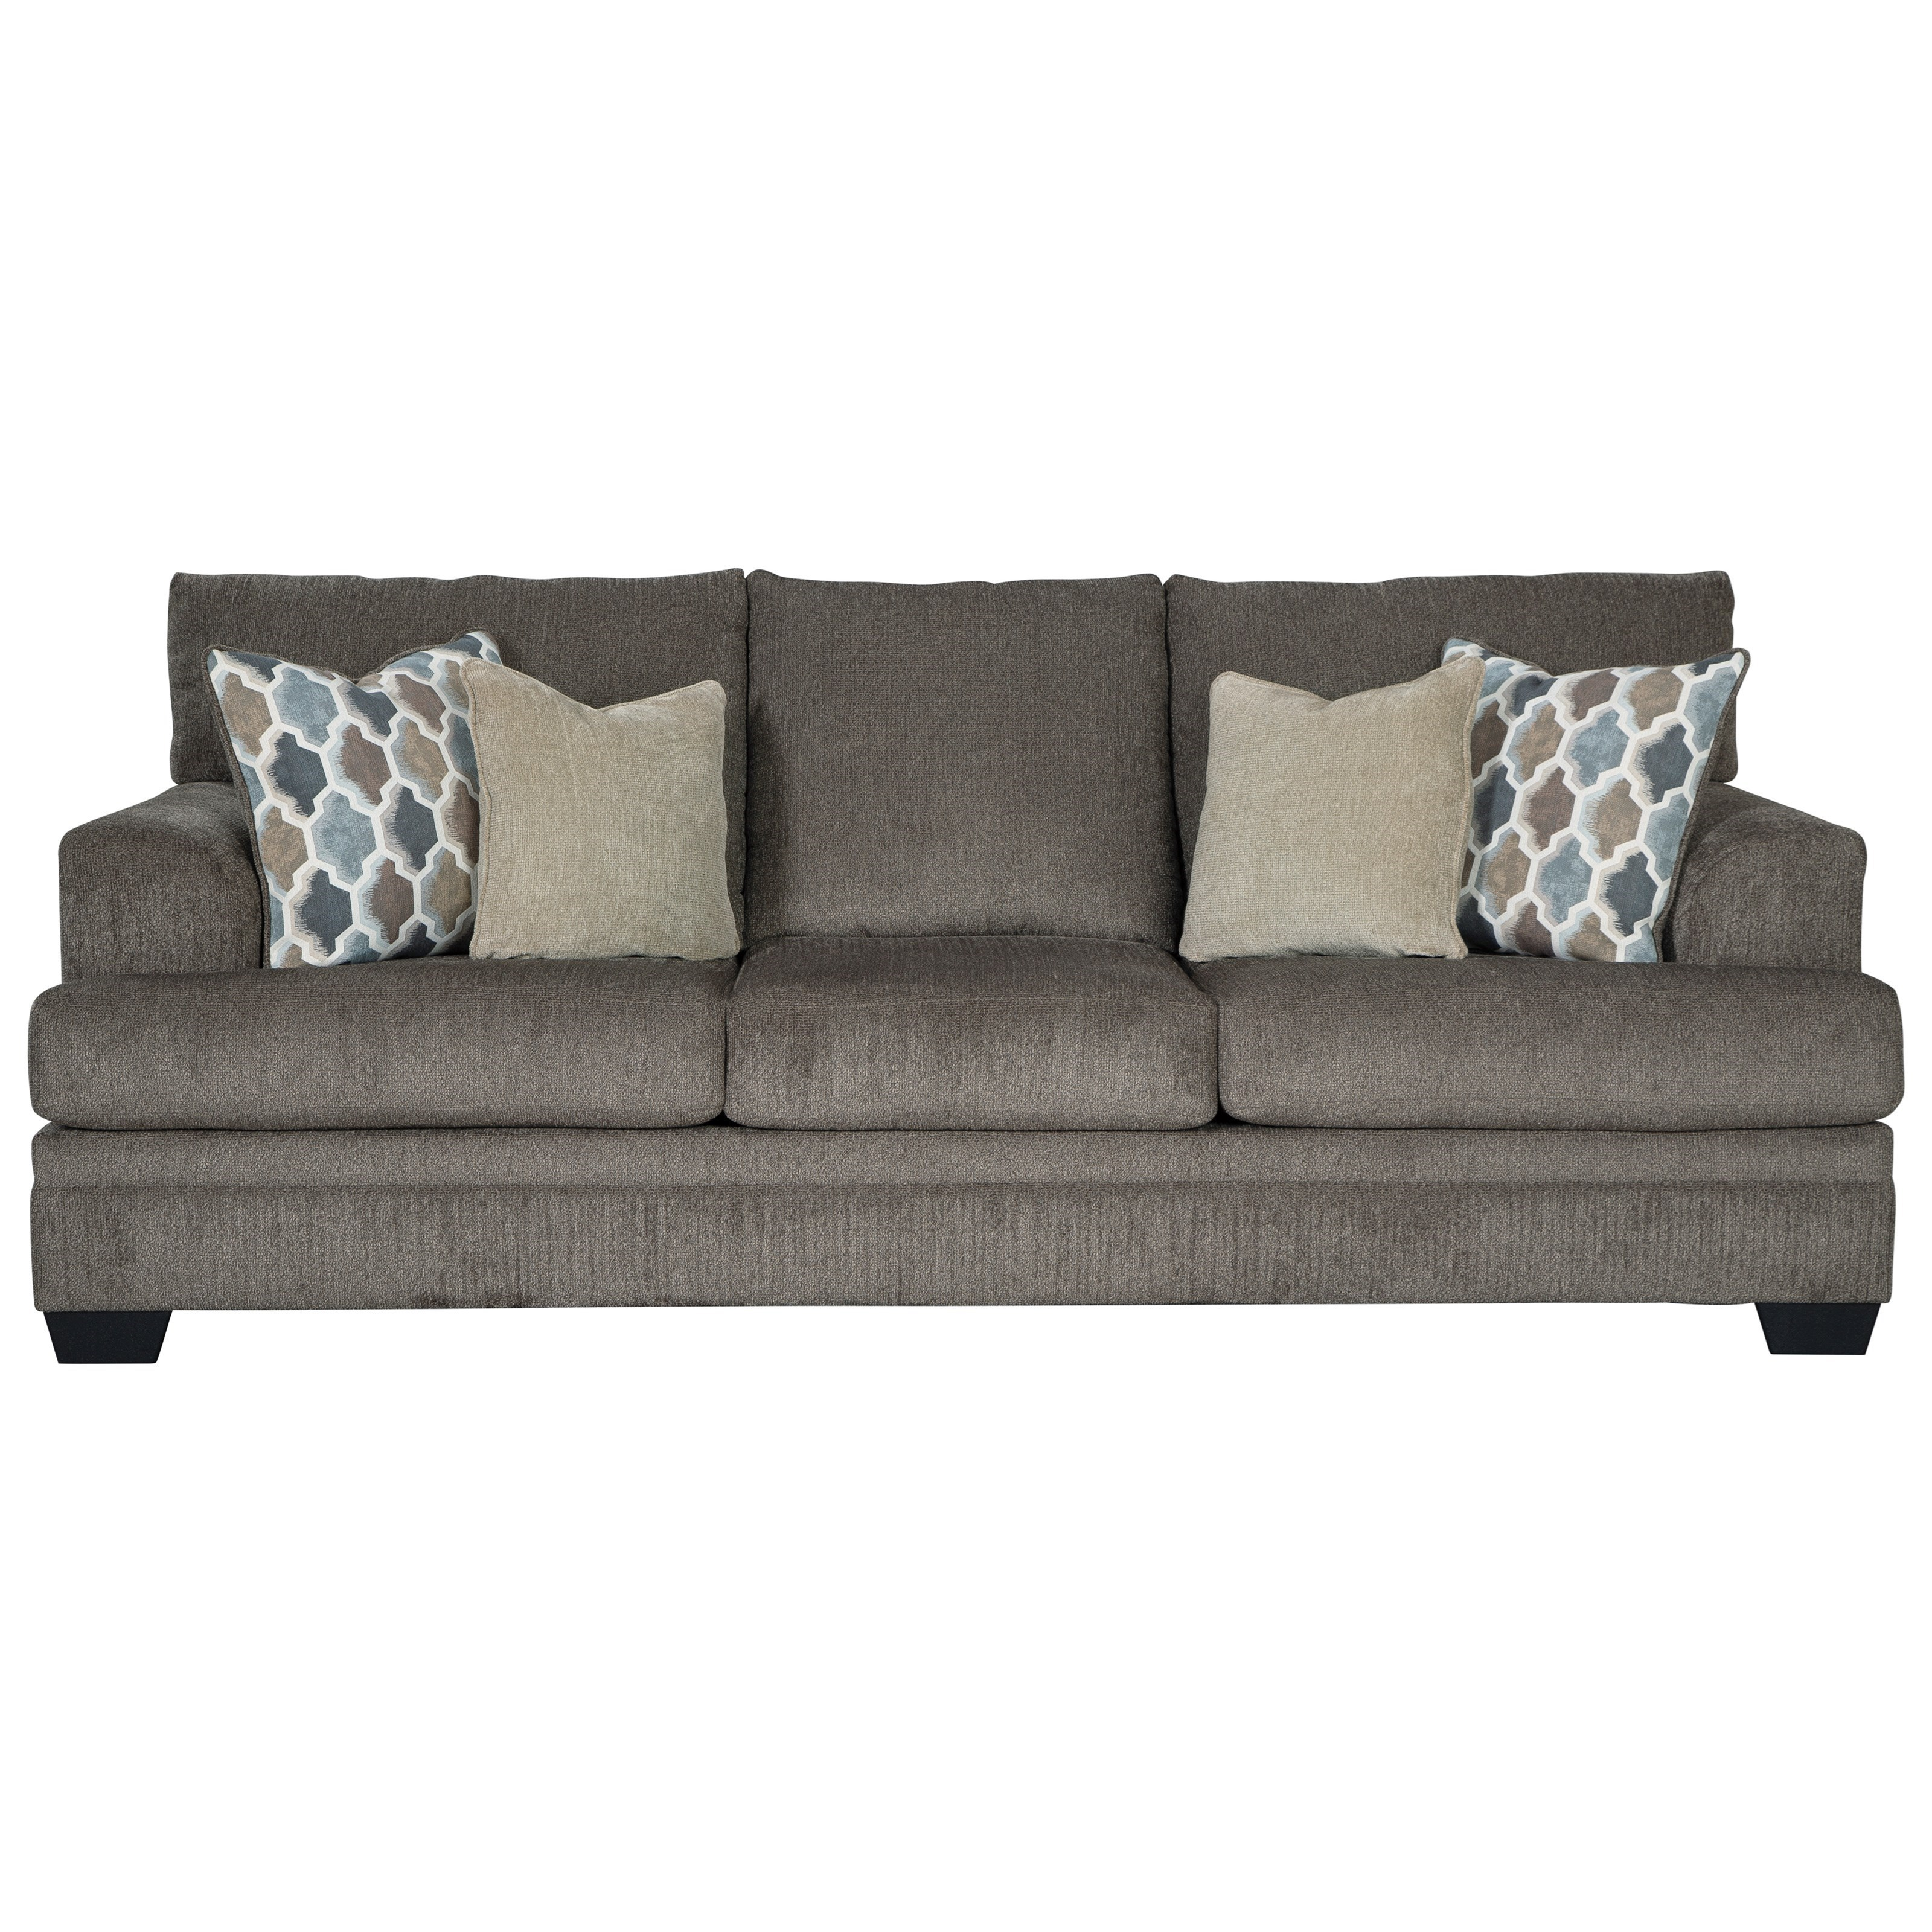 Dorsten Sofa by Signature Design by Ashley at Turk Furniture